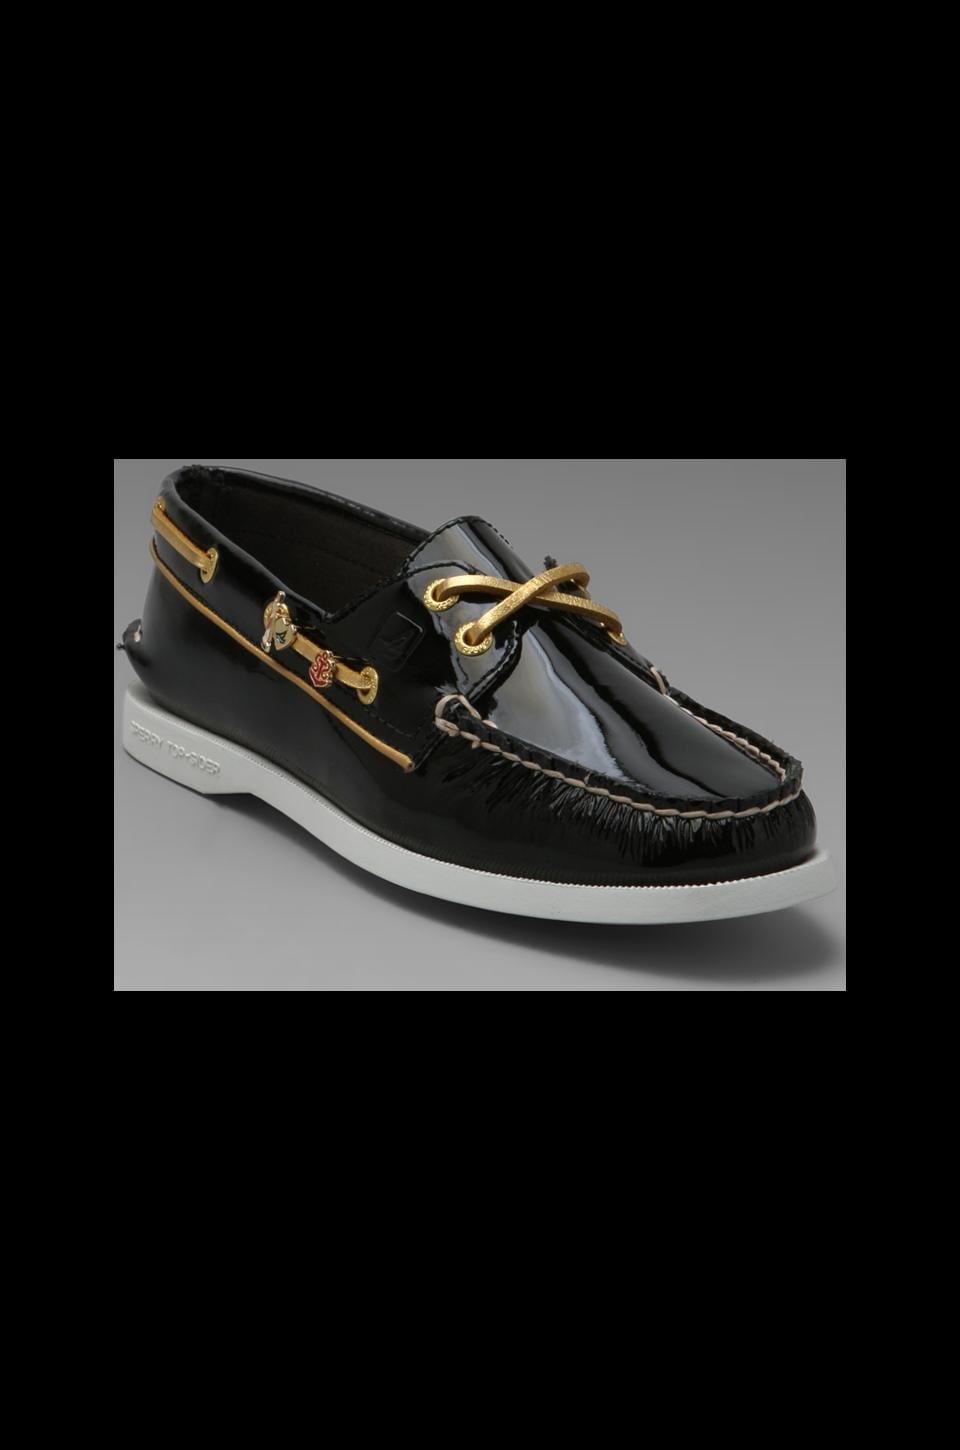 Sperry Top-Sider 2-Eye in Black Patent